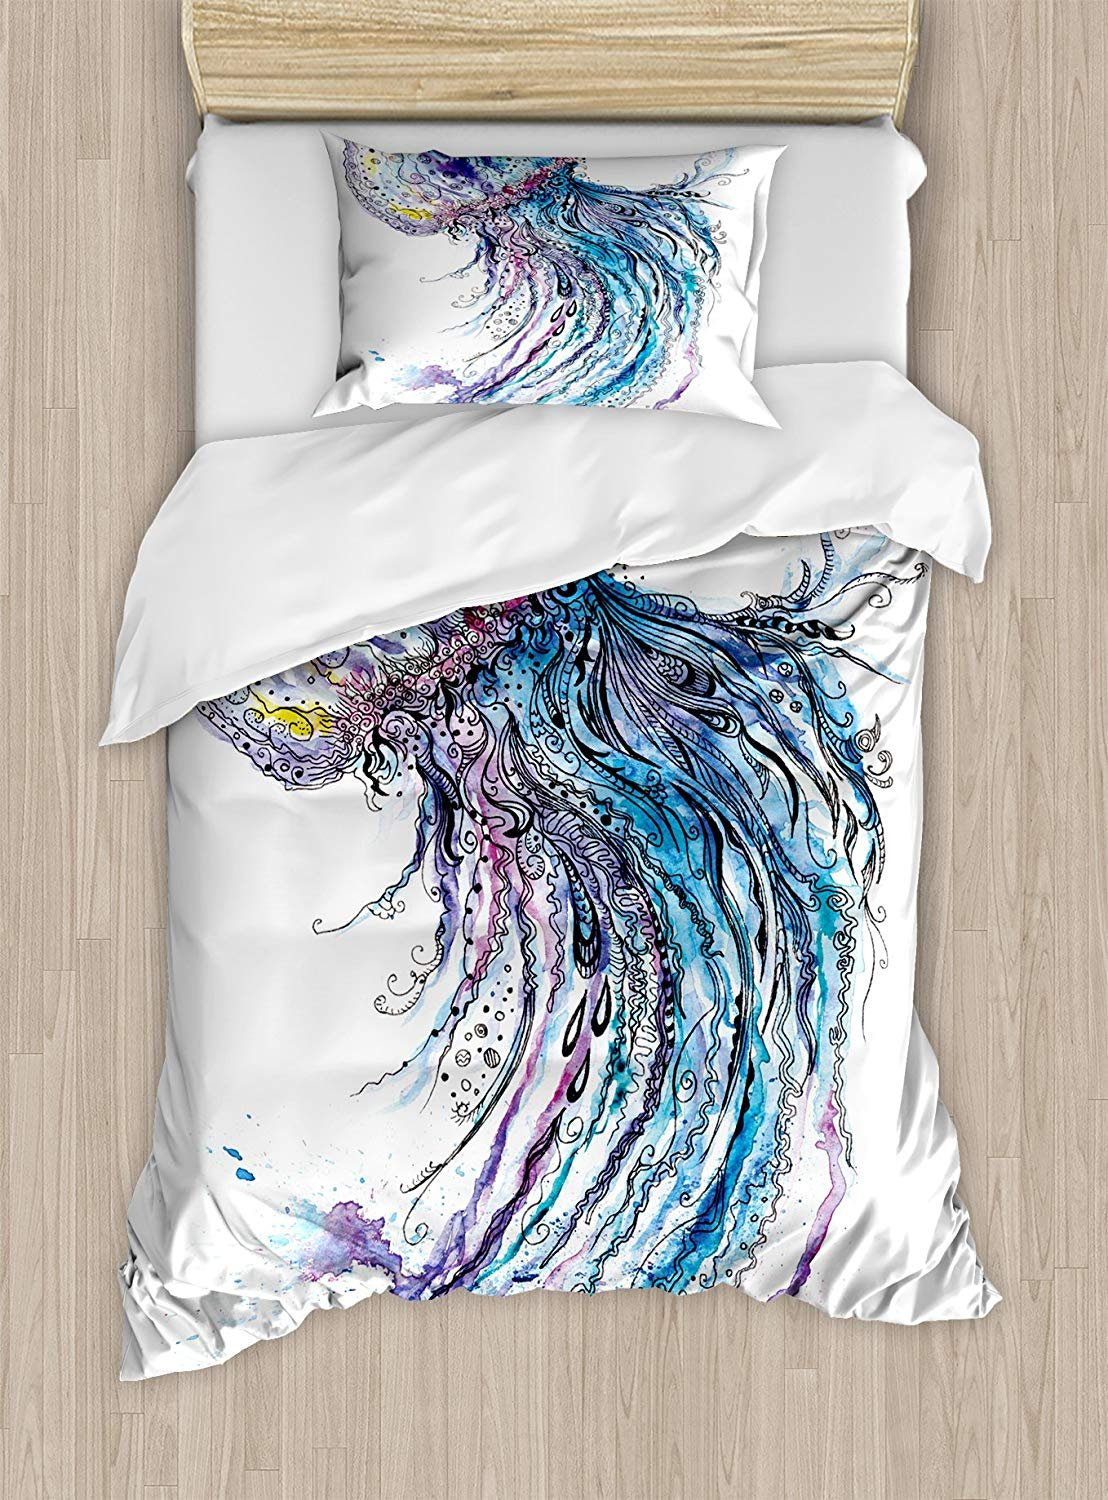 Twin XL Extra Long Bedding Set, Jellyfish Duvet Cover Set, Aqua Colors Art Ocean Animal Print Sketch Style Creative Sea Marine Theme, Include 1 Flat Sheet 1 Duvet Cover and 2 Pillow Cases